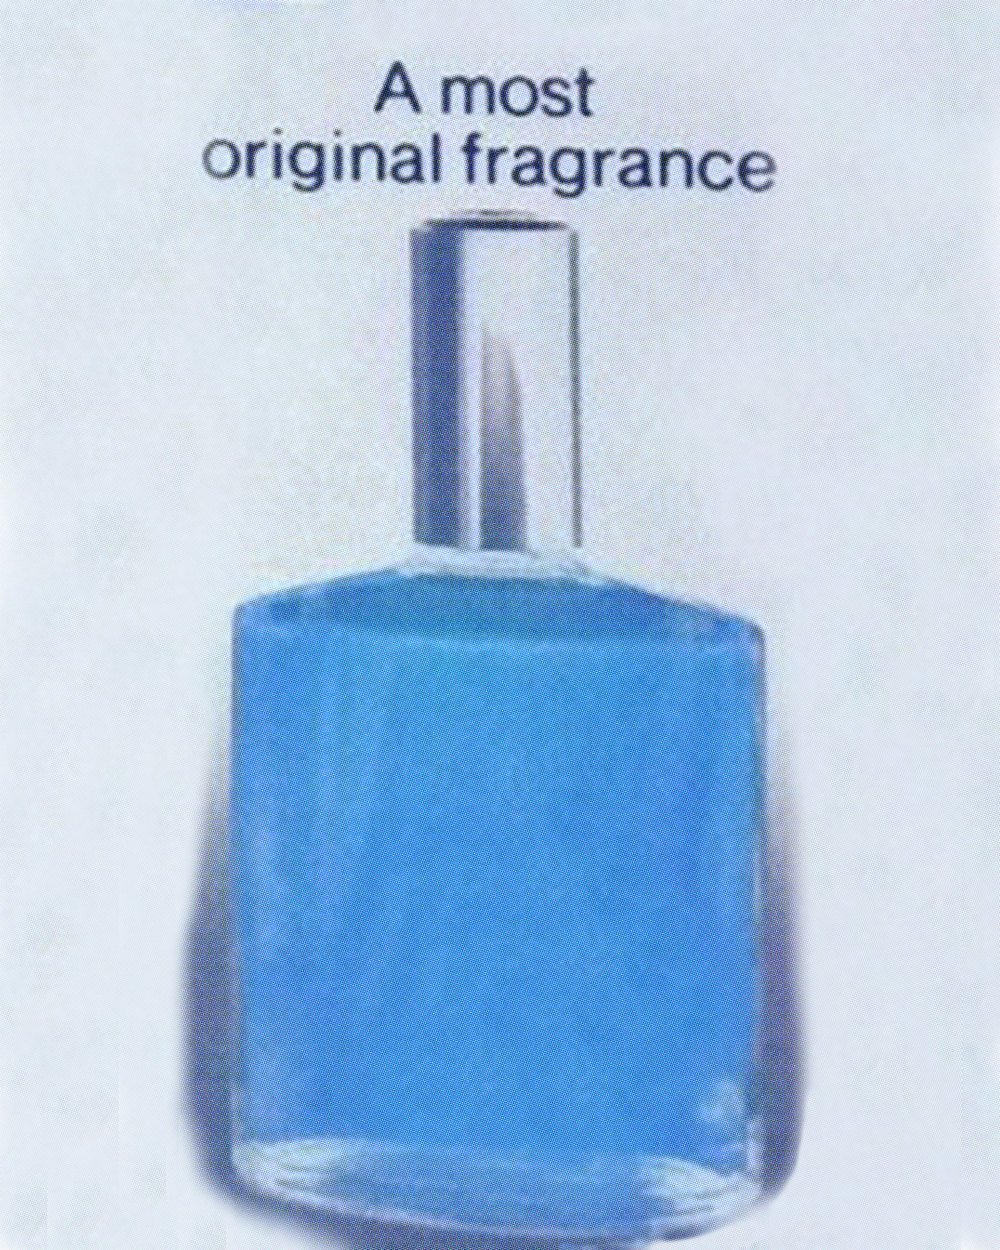 A Most Original Fragrance, 2016